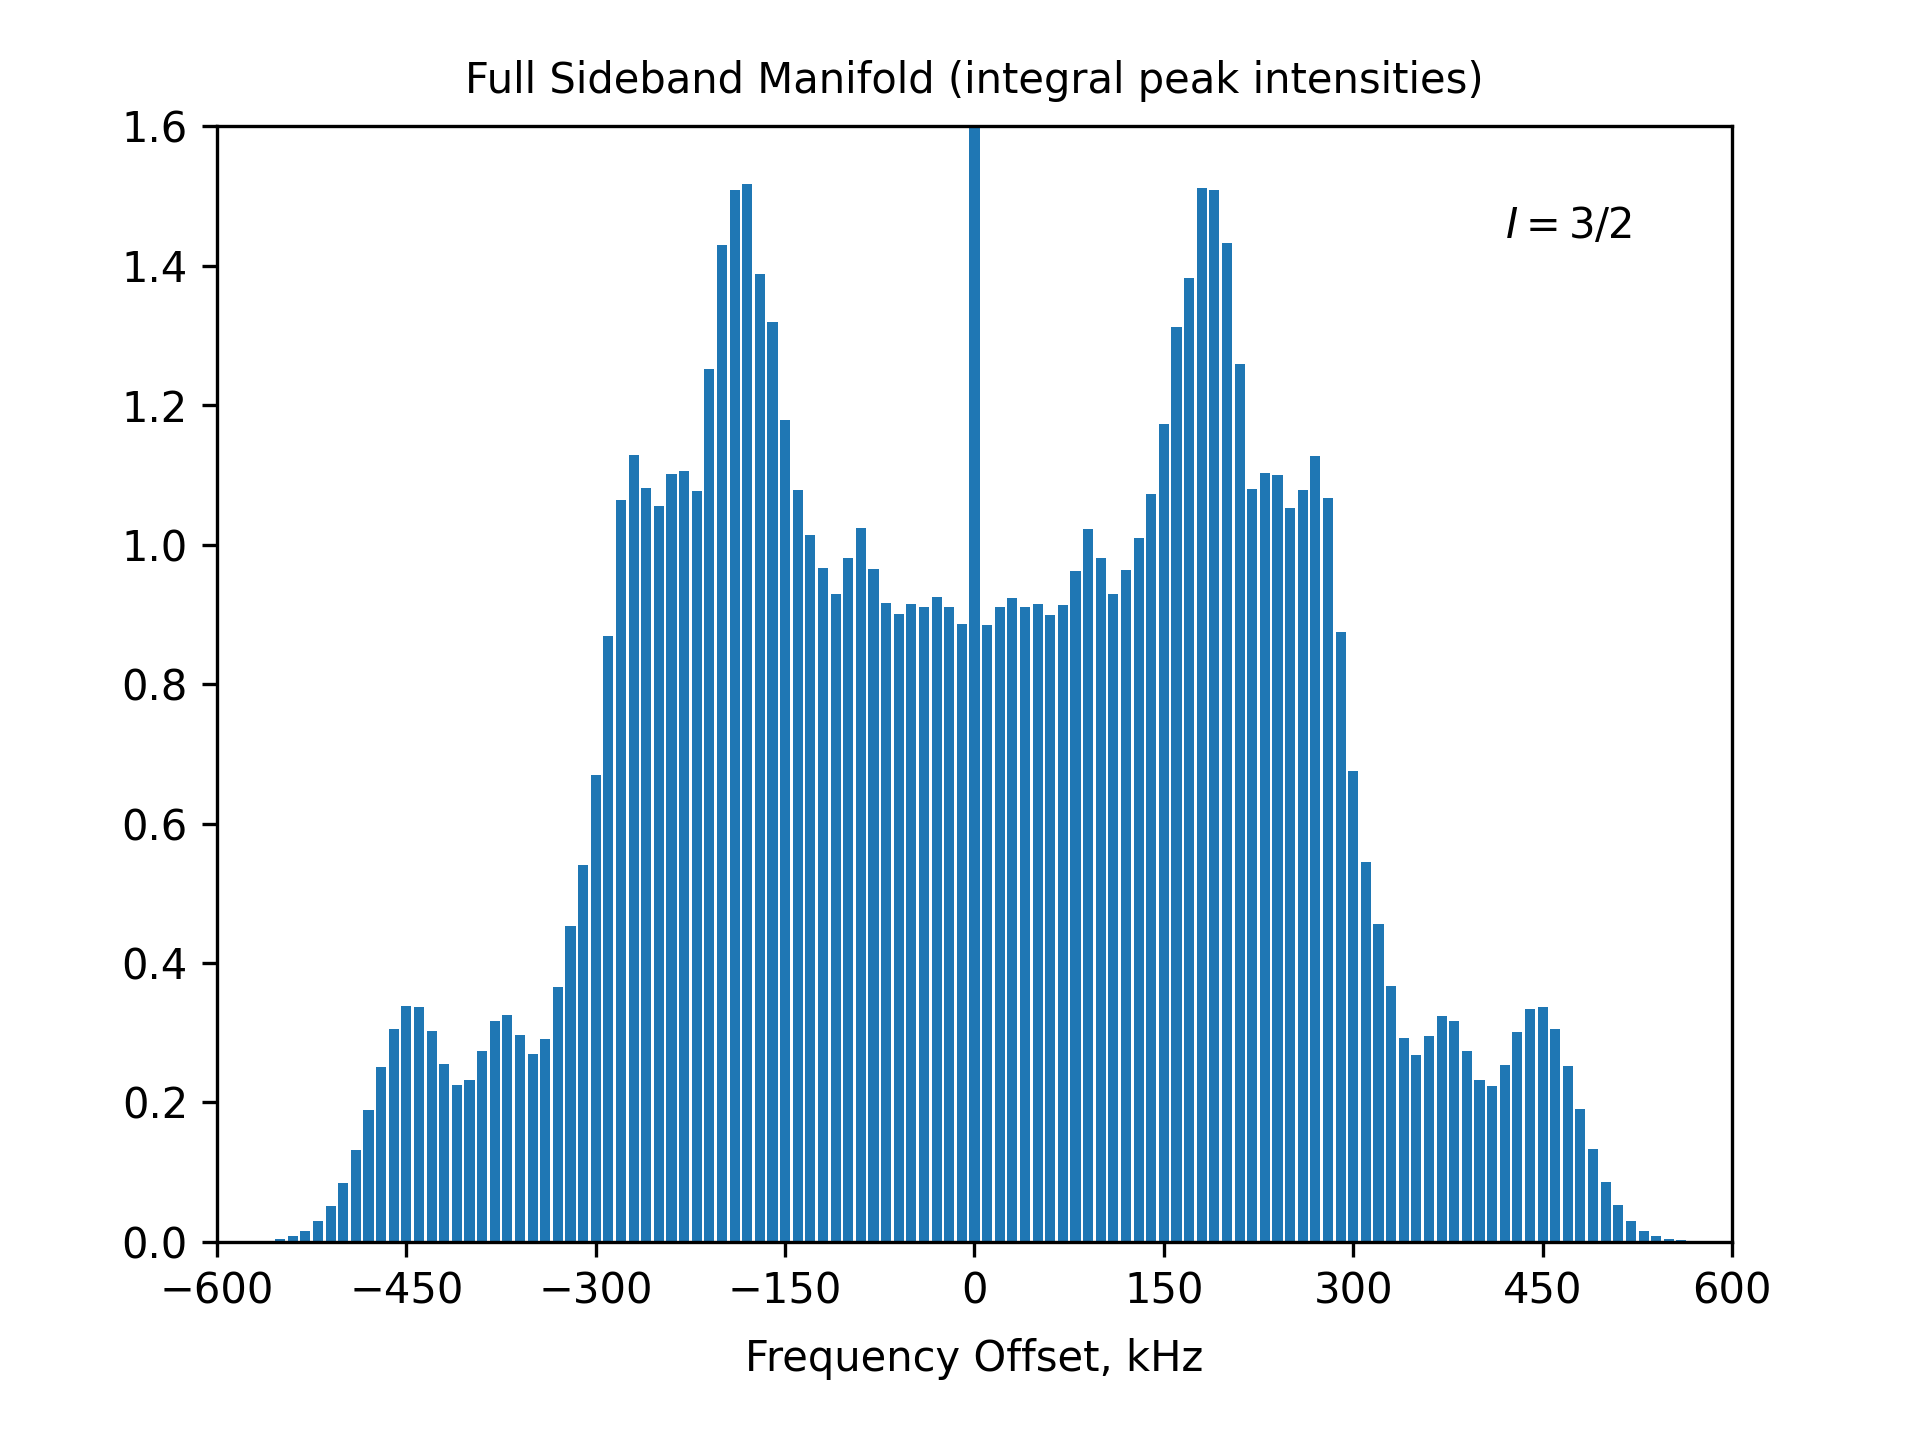 Full Sideband Manifold (integral peak intensities)